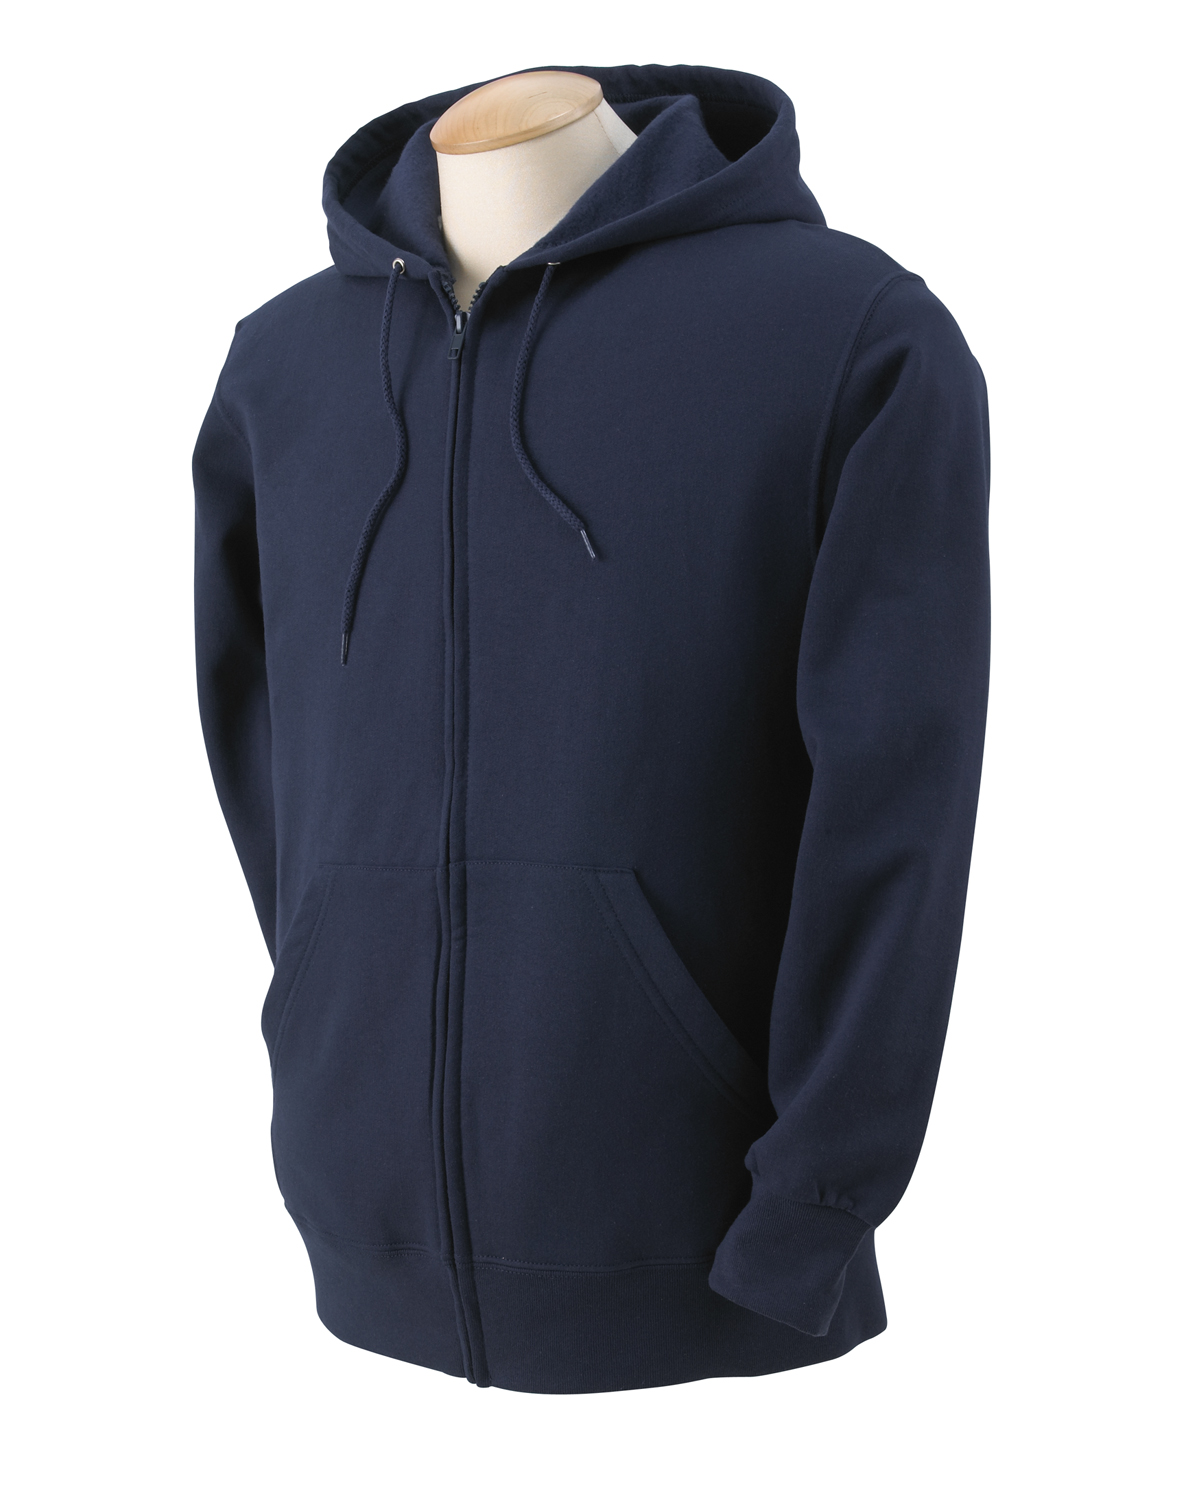 Fruit of the Loom Super Heavyweight 12 oz. Full-Zip Hoodie 82230